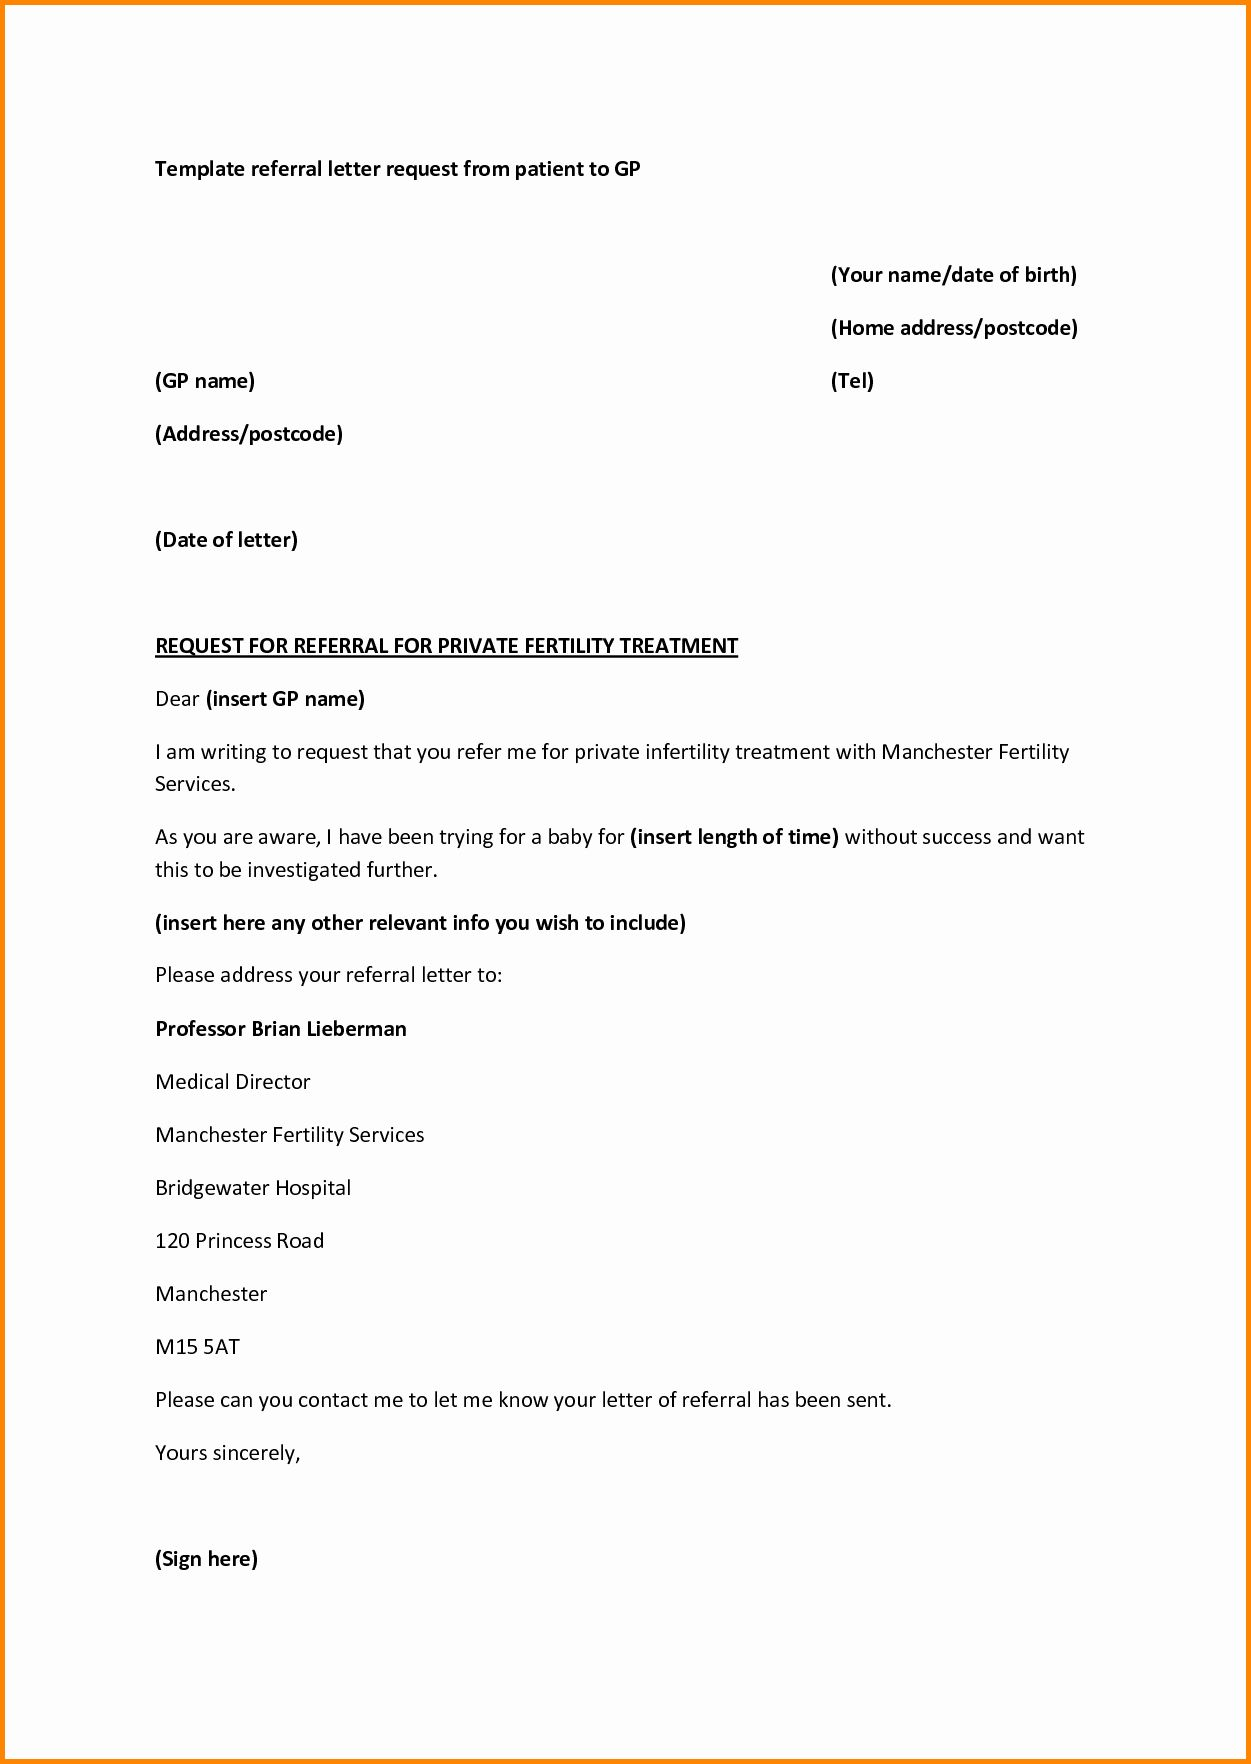 Physician Referral Form Template Lovely Medical Referral Letter Template Microsoft Word Referral Letter Lettering Doctors Note Template